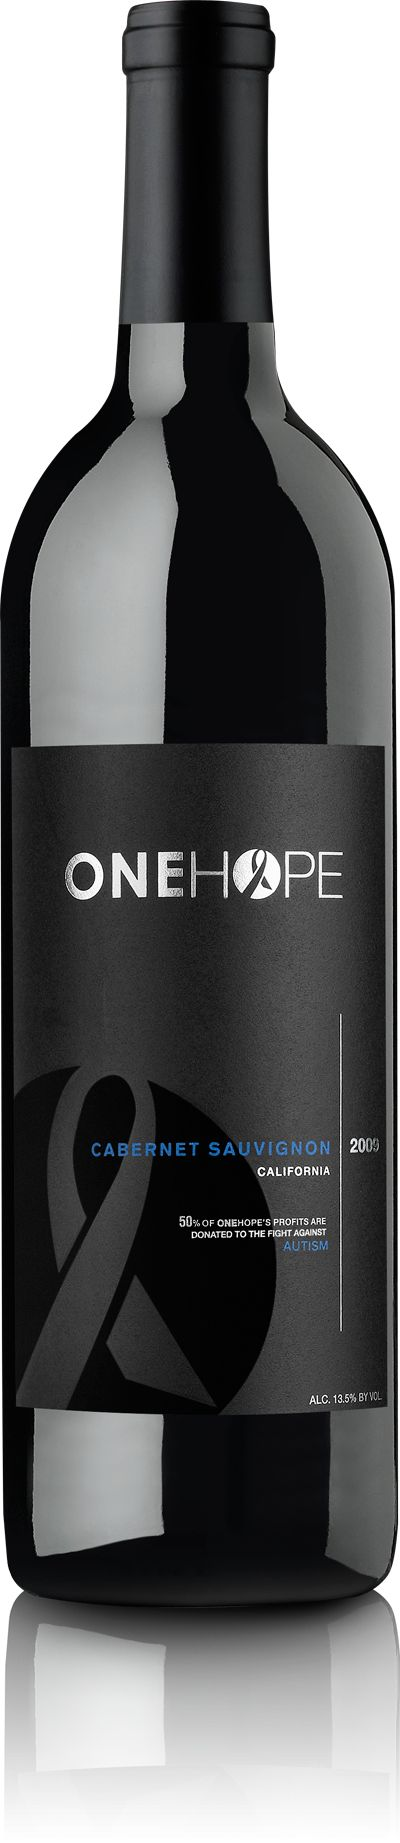 onehope cabernet- every bottle purchased goes towards grants for families of children with autism